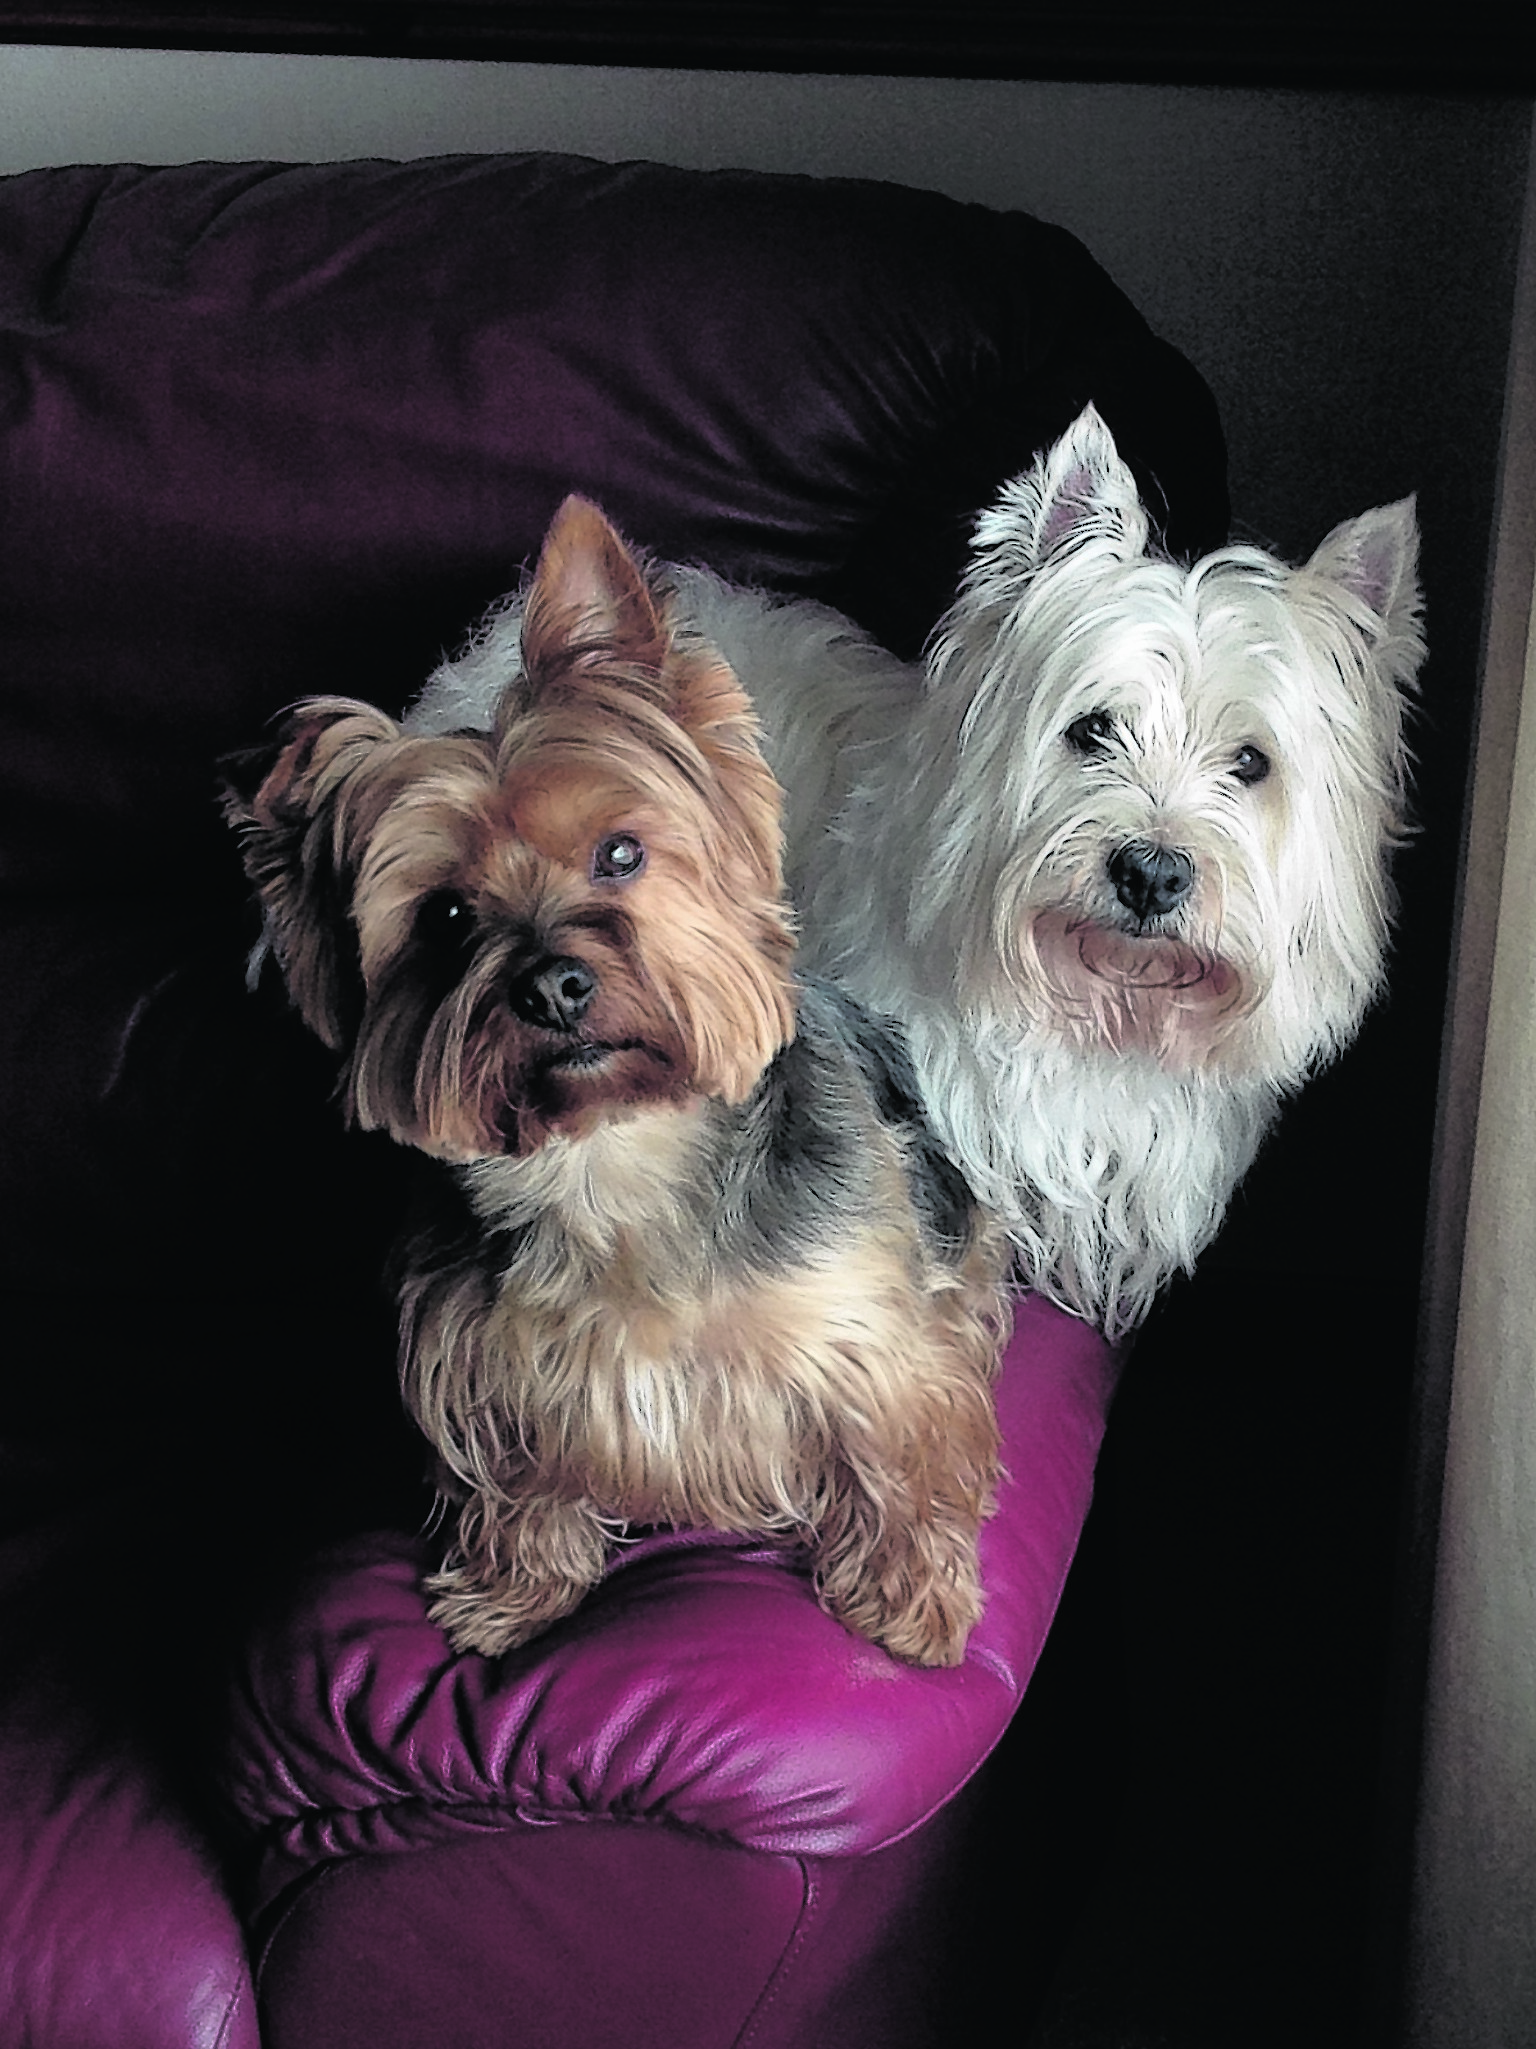 This is Rory Thomson and Toby Davison, best friends, at Burnside, Thurso, Caithness. Toby lives with Sharon Davison and Rory lives with Sharon and Iain.